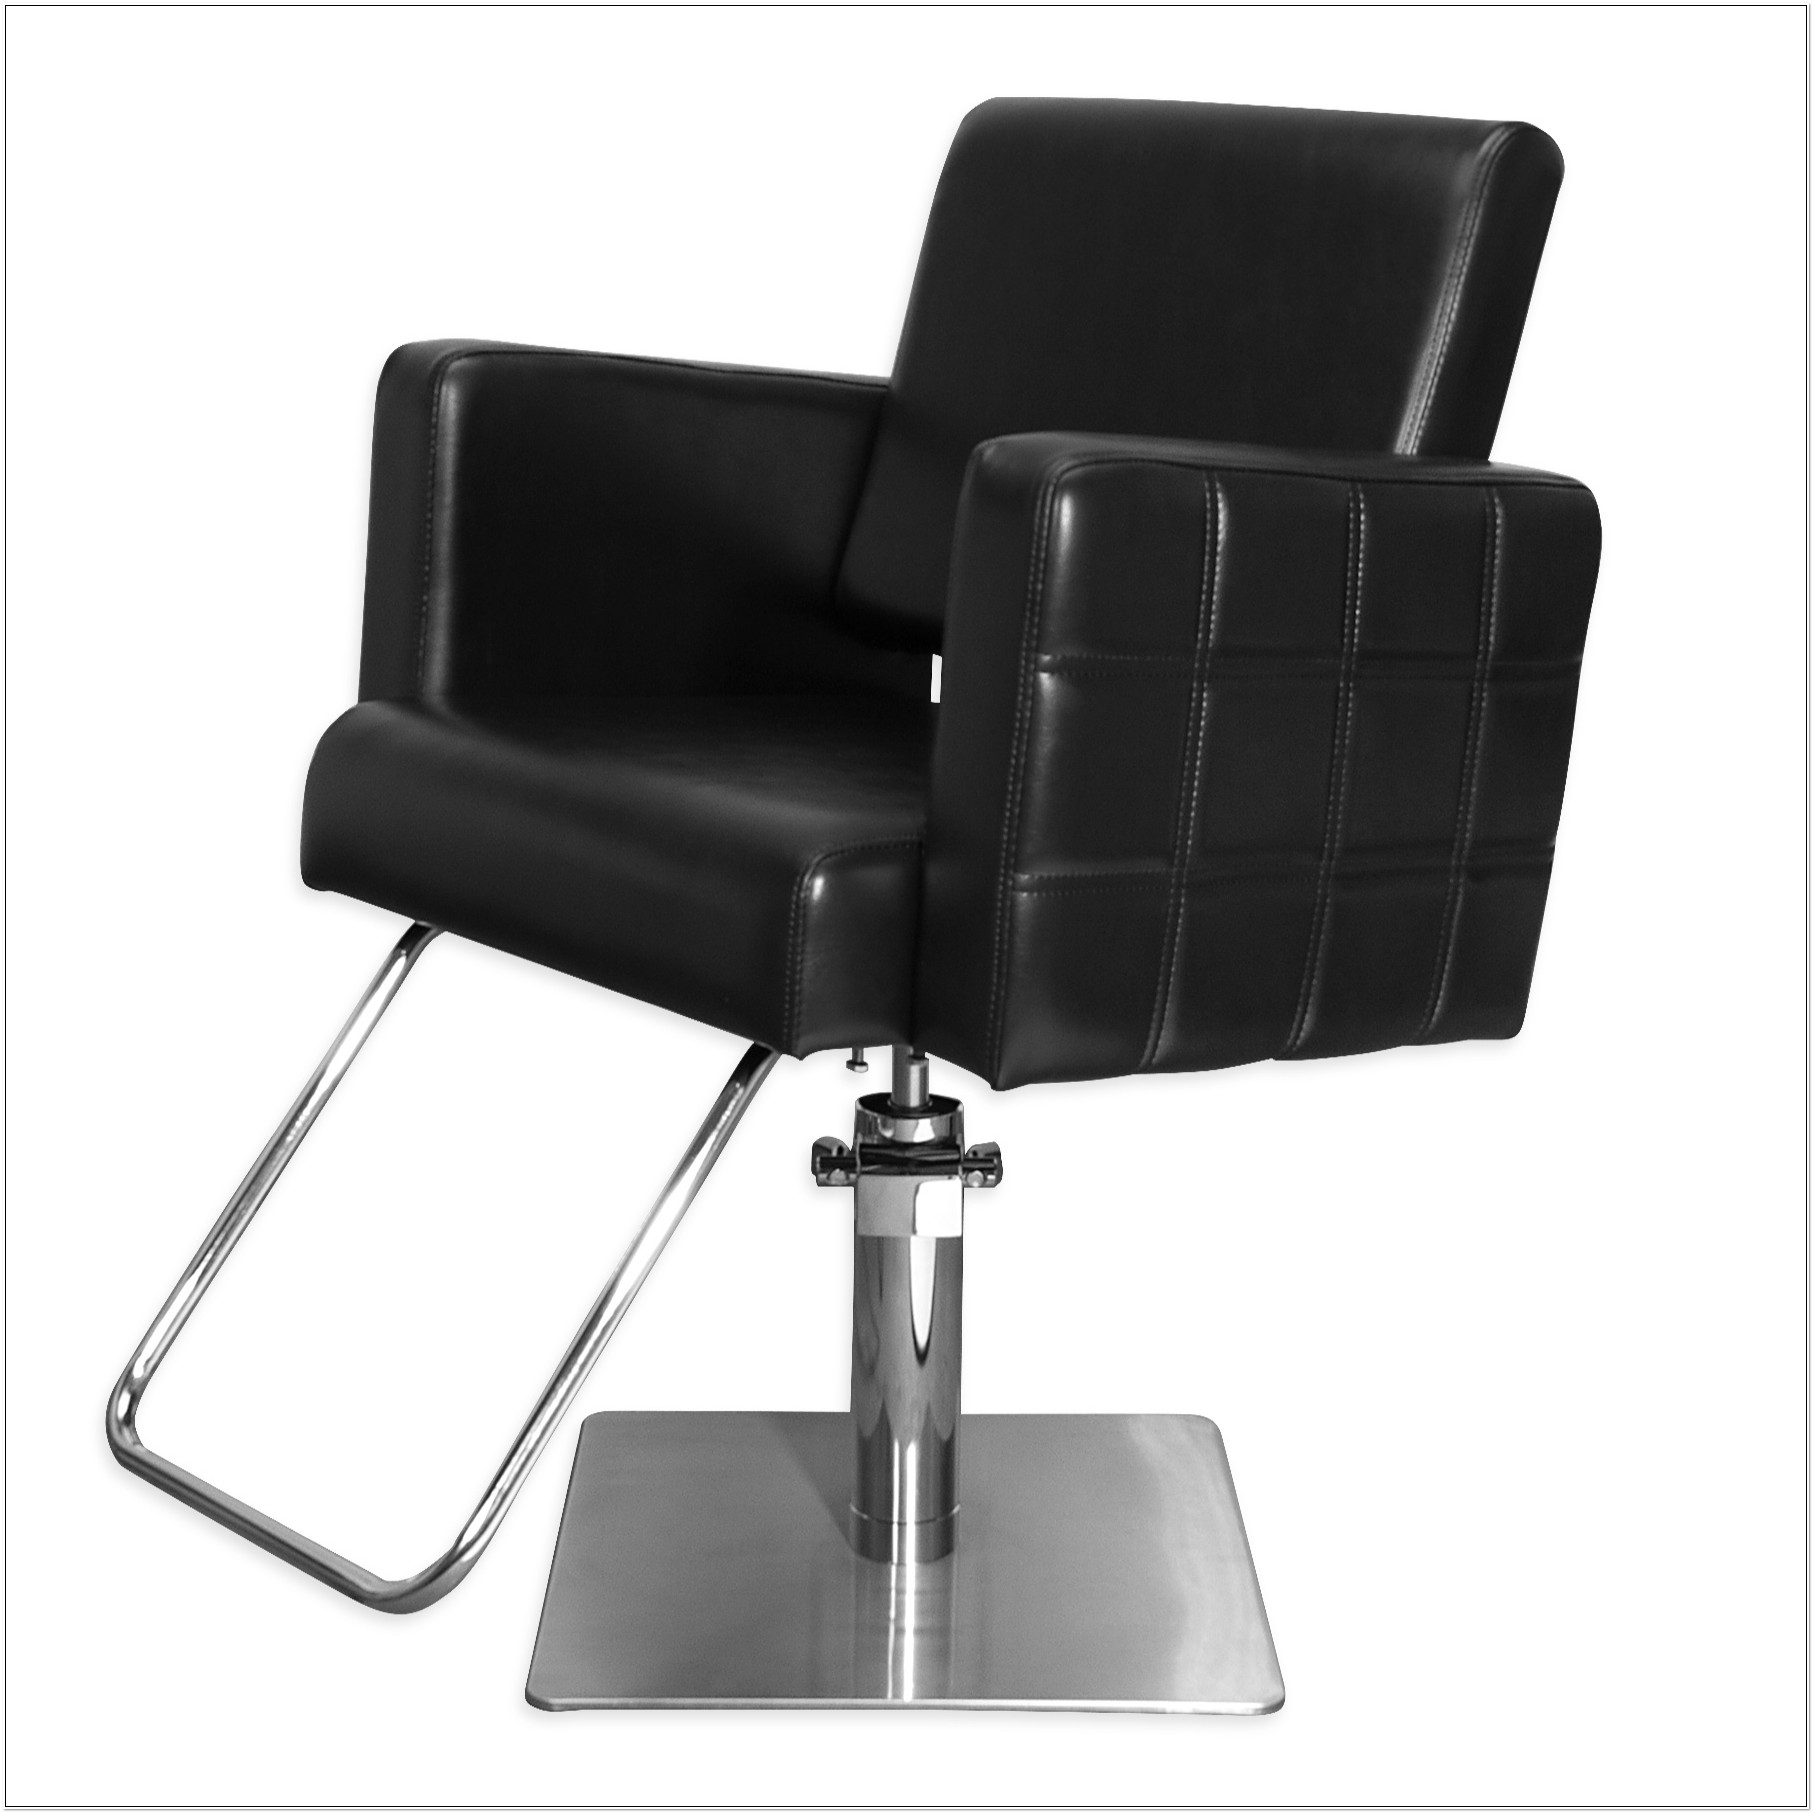 Used Hair Salon Styling Chairs